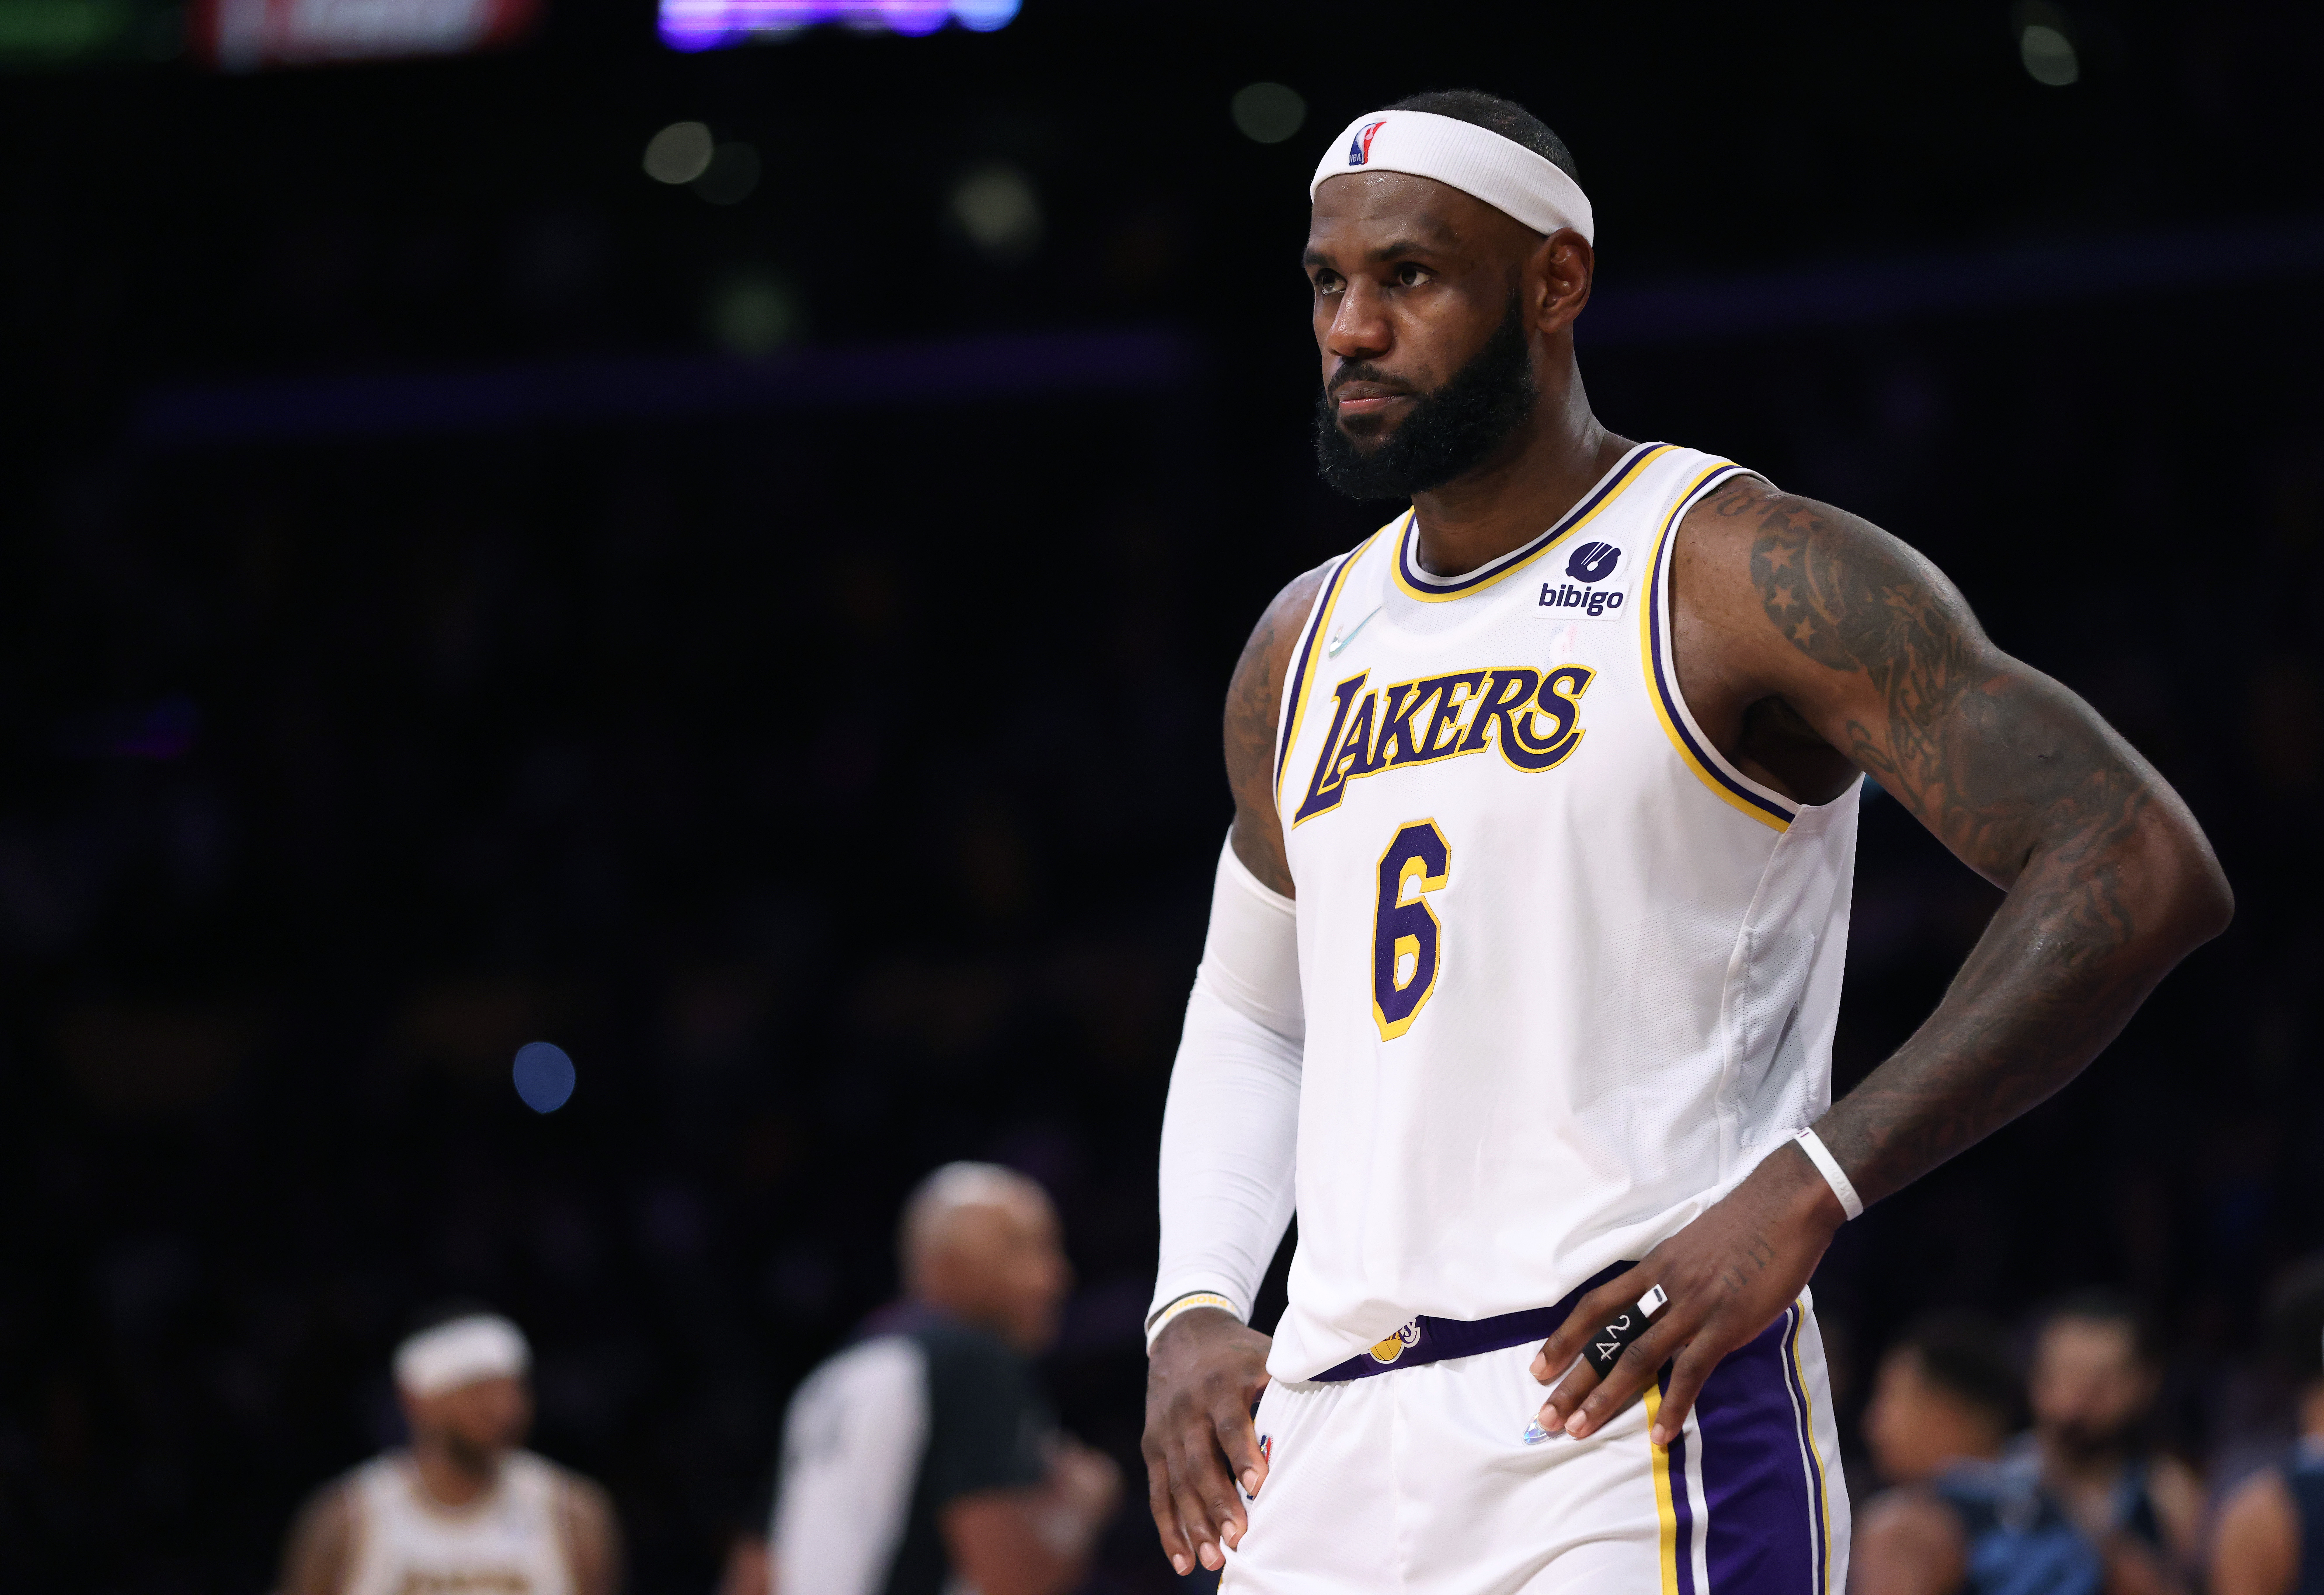 LeBron James #6 of the Los Angeles Lakers reacts to a call during a 121-118 win over the Memphis Grizzlies at Staples Center on October 24, 2021 in Los Angeles, California.